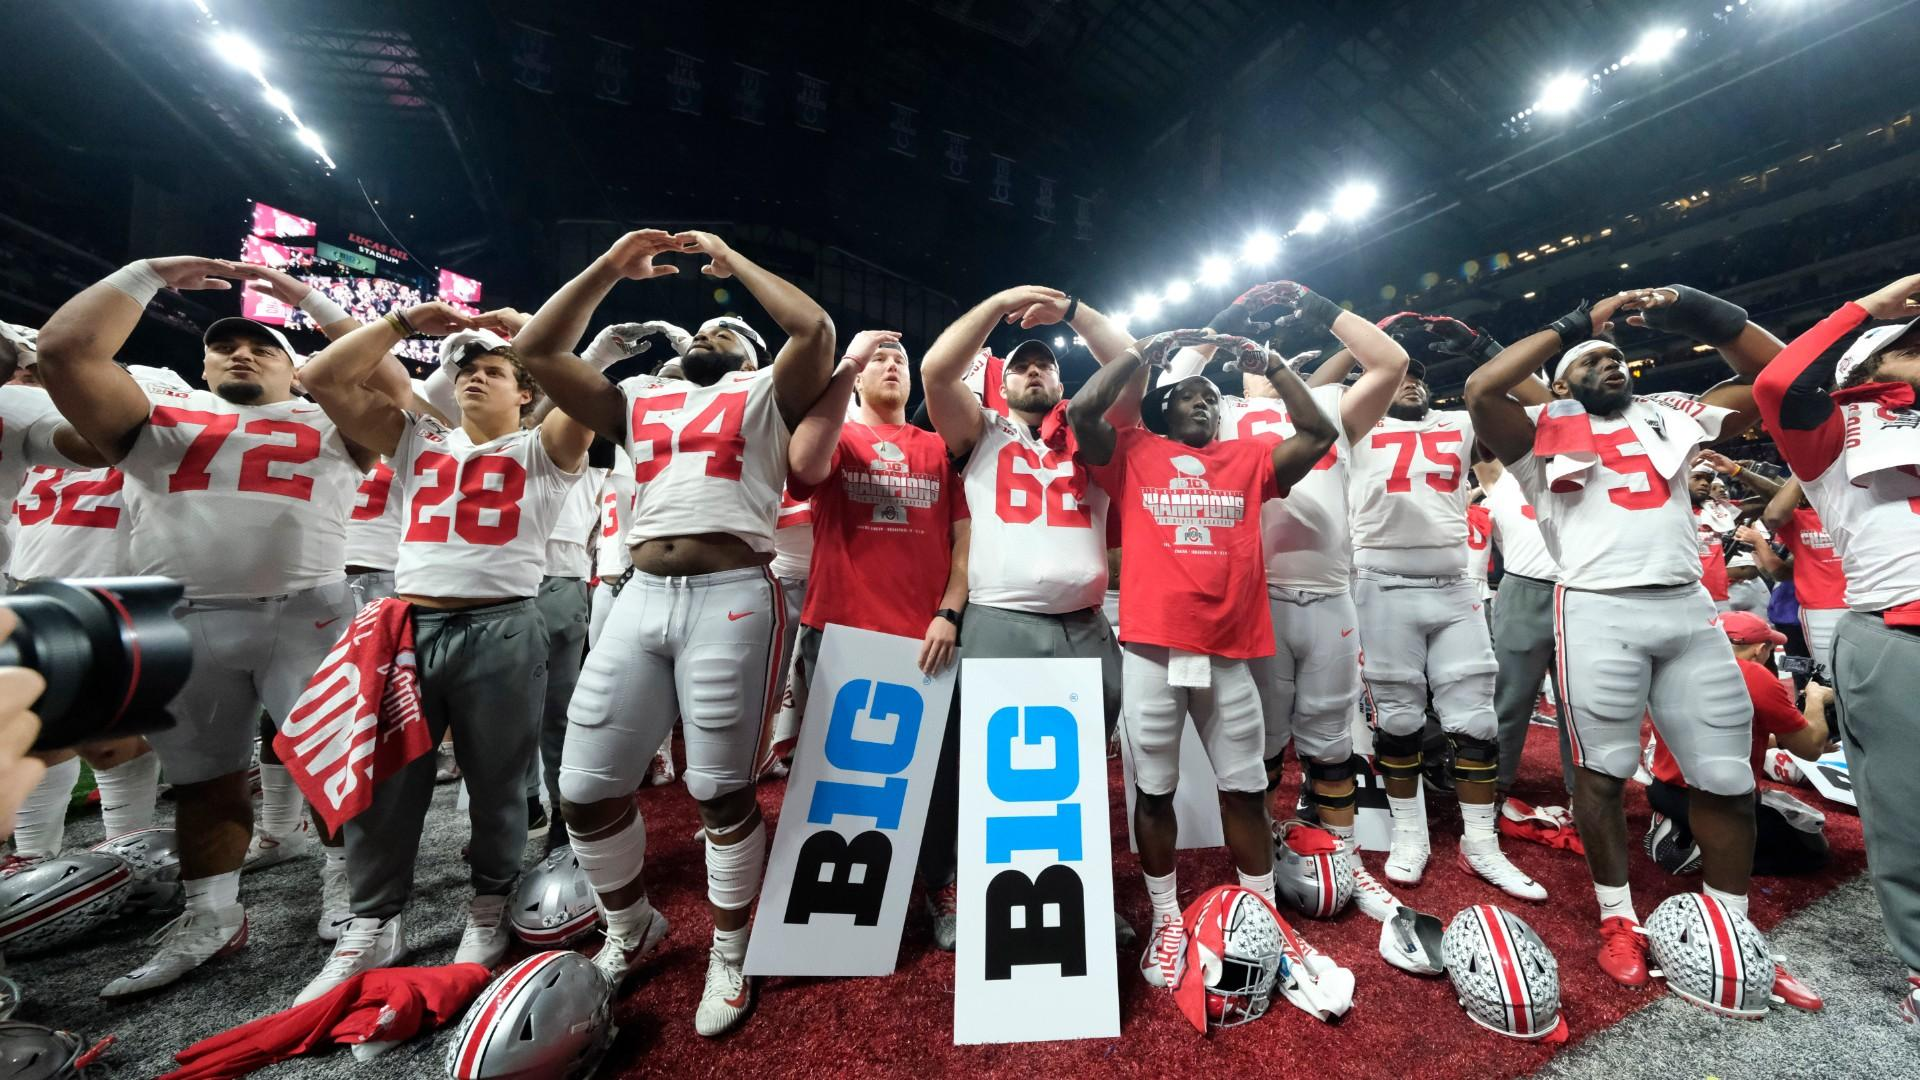 In this Dec. 8, 2019, file photo, Ohio State players celebrate the team's 34-21 win over Wisconsin in the Big Ten championship NCAA college football game, in Indianapolis. (AP Photo / AJ Mast, File)